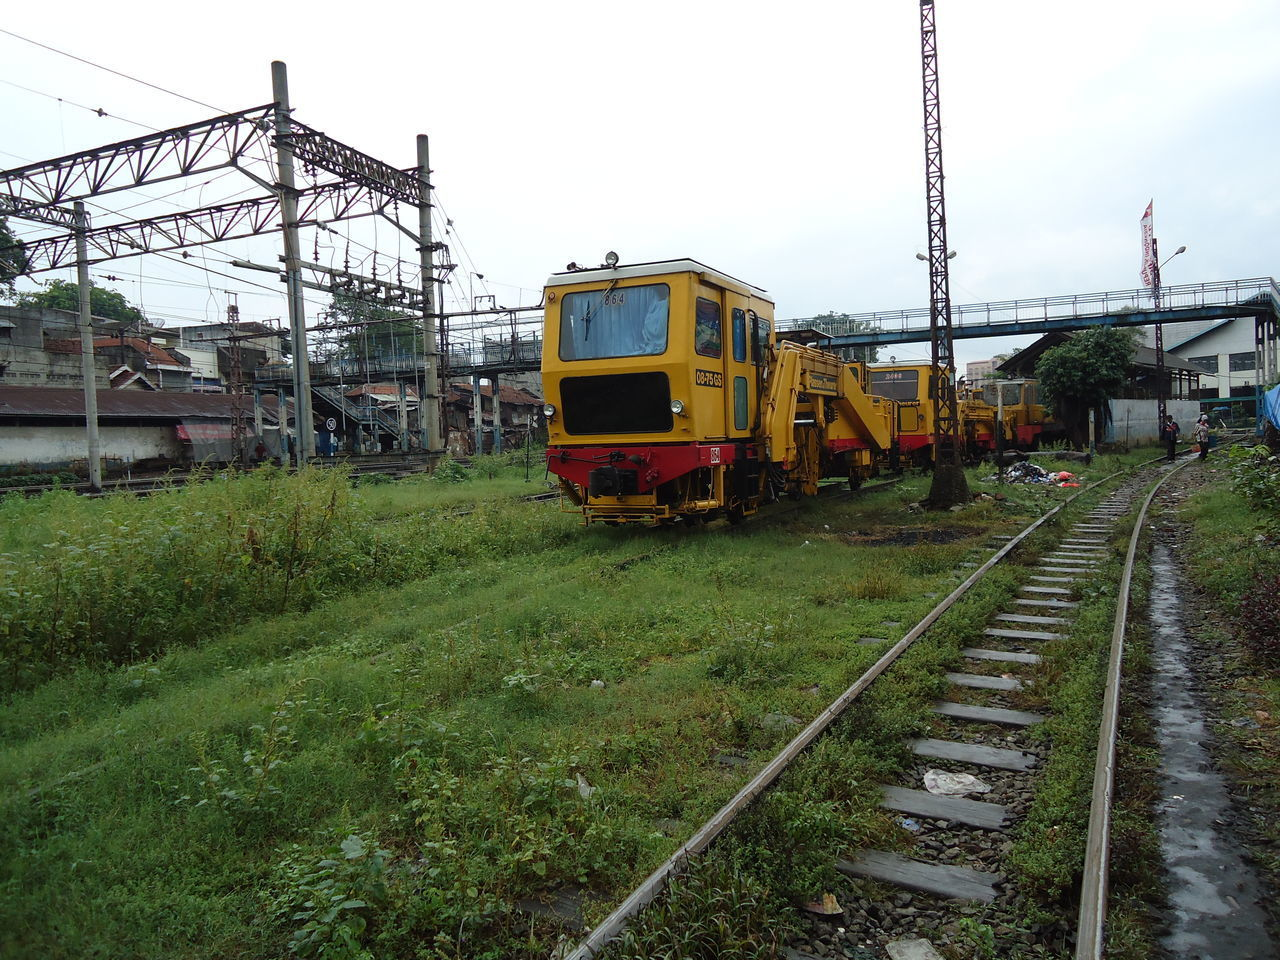 The Old Train Cycling Cycling Around CyclingUnites Day Land Vehicle No People Oldtrain Oldtrainstation Outdoors Steel Steeltrain Train Train Station Train Tracks Trainphotography Trains Transportation